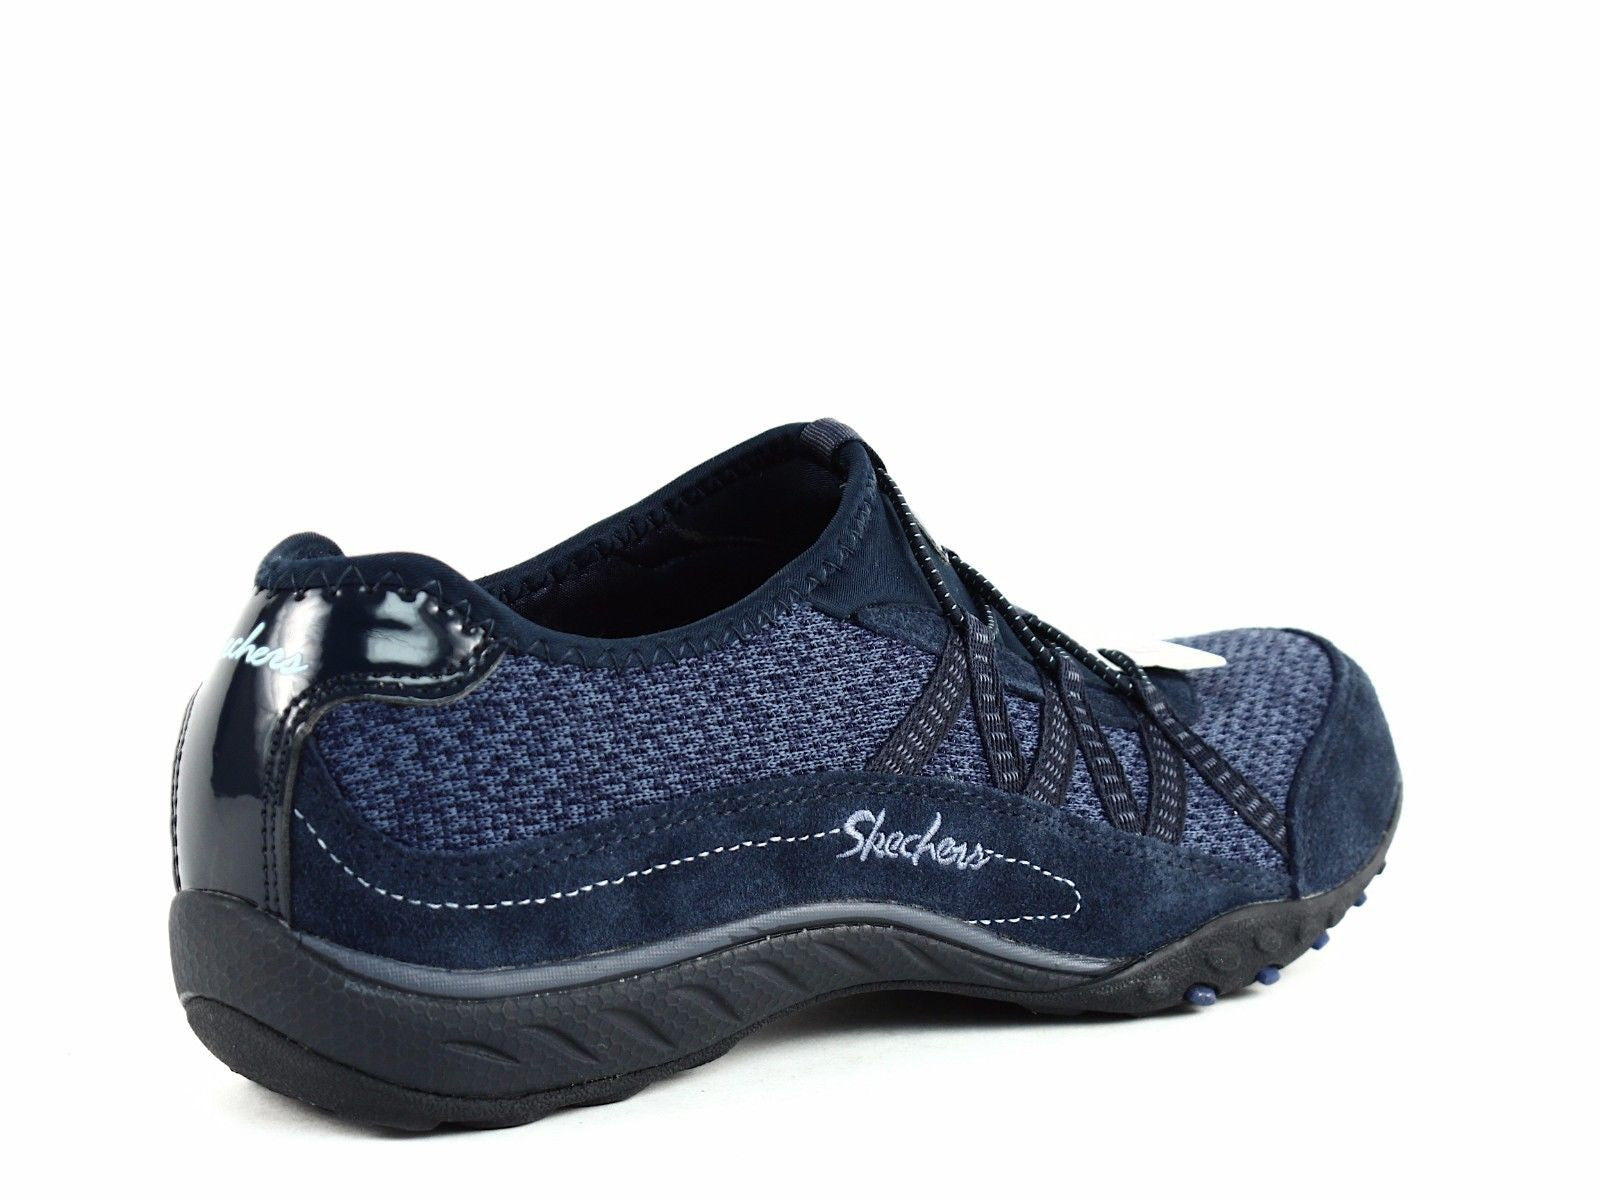 are skechers comfortable